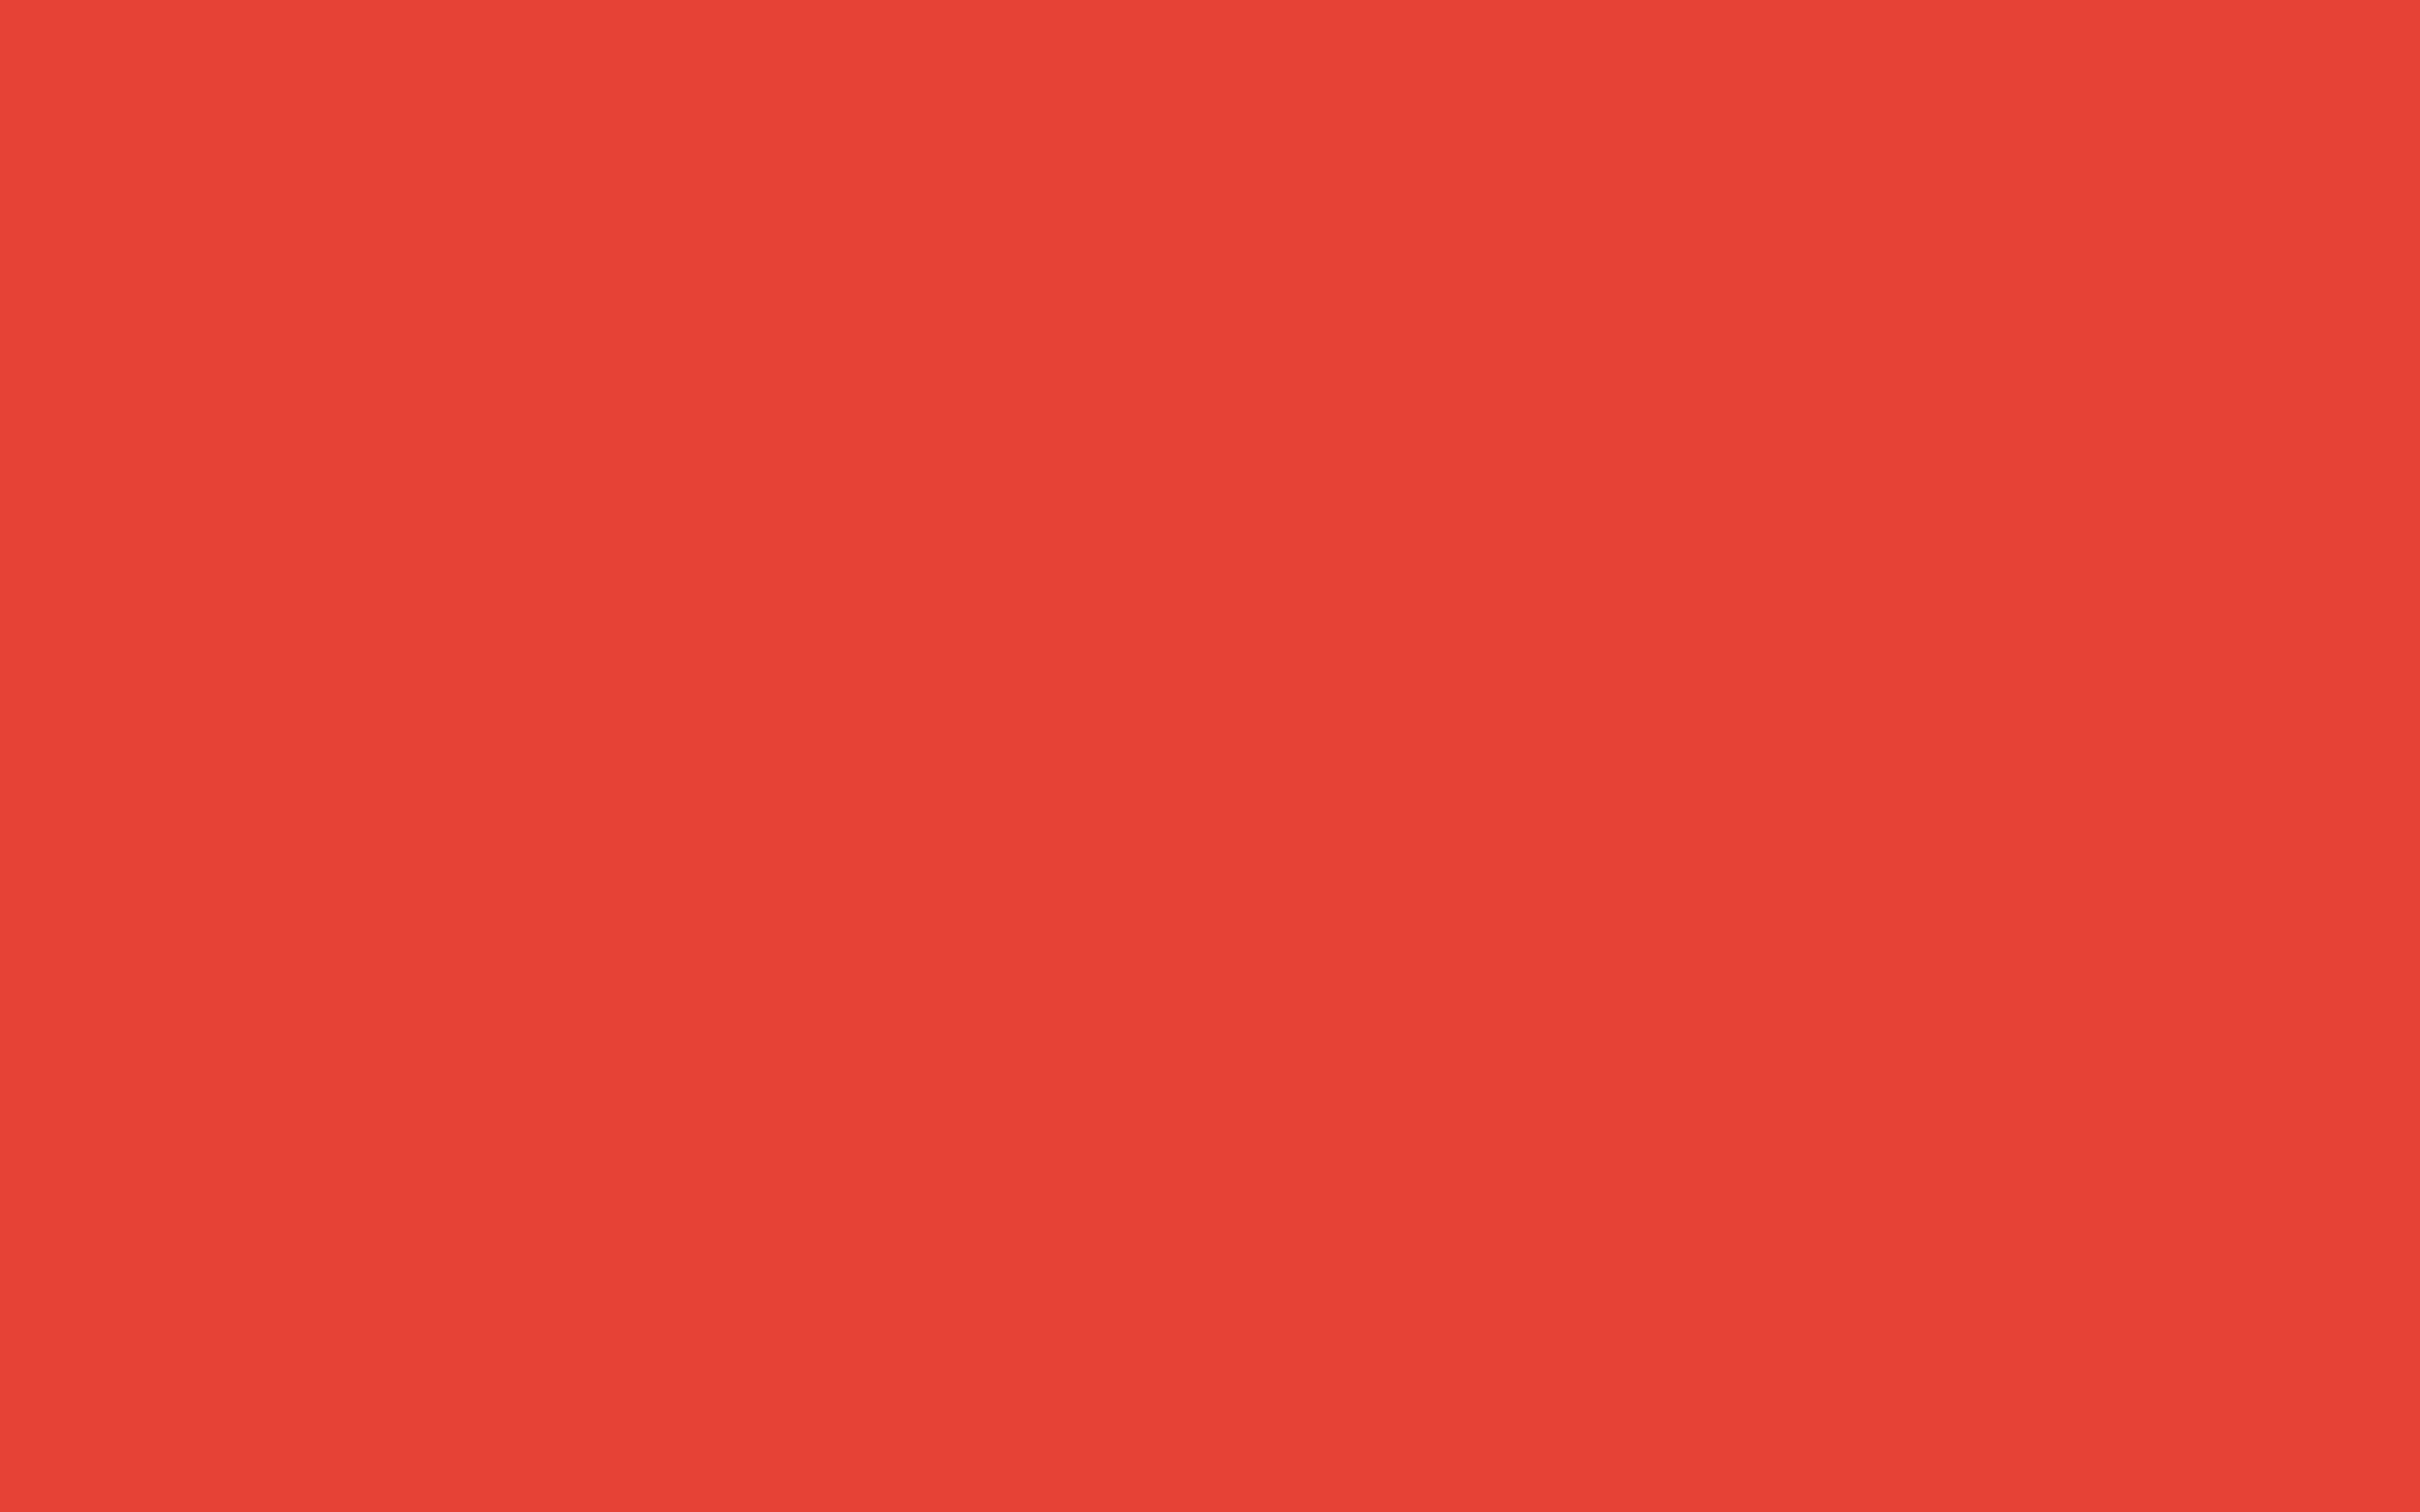 2560x1600 Cinnabar Solid Color Background